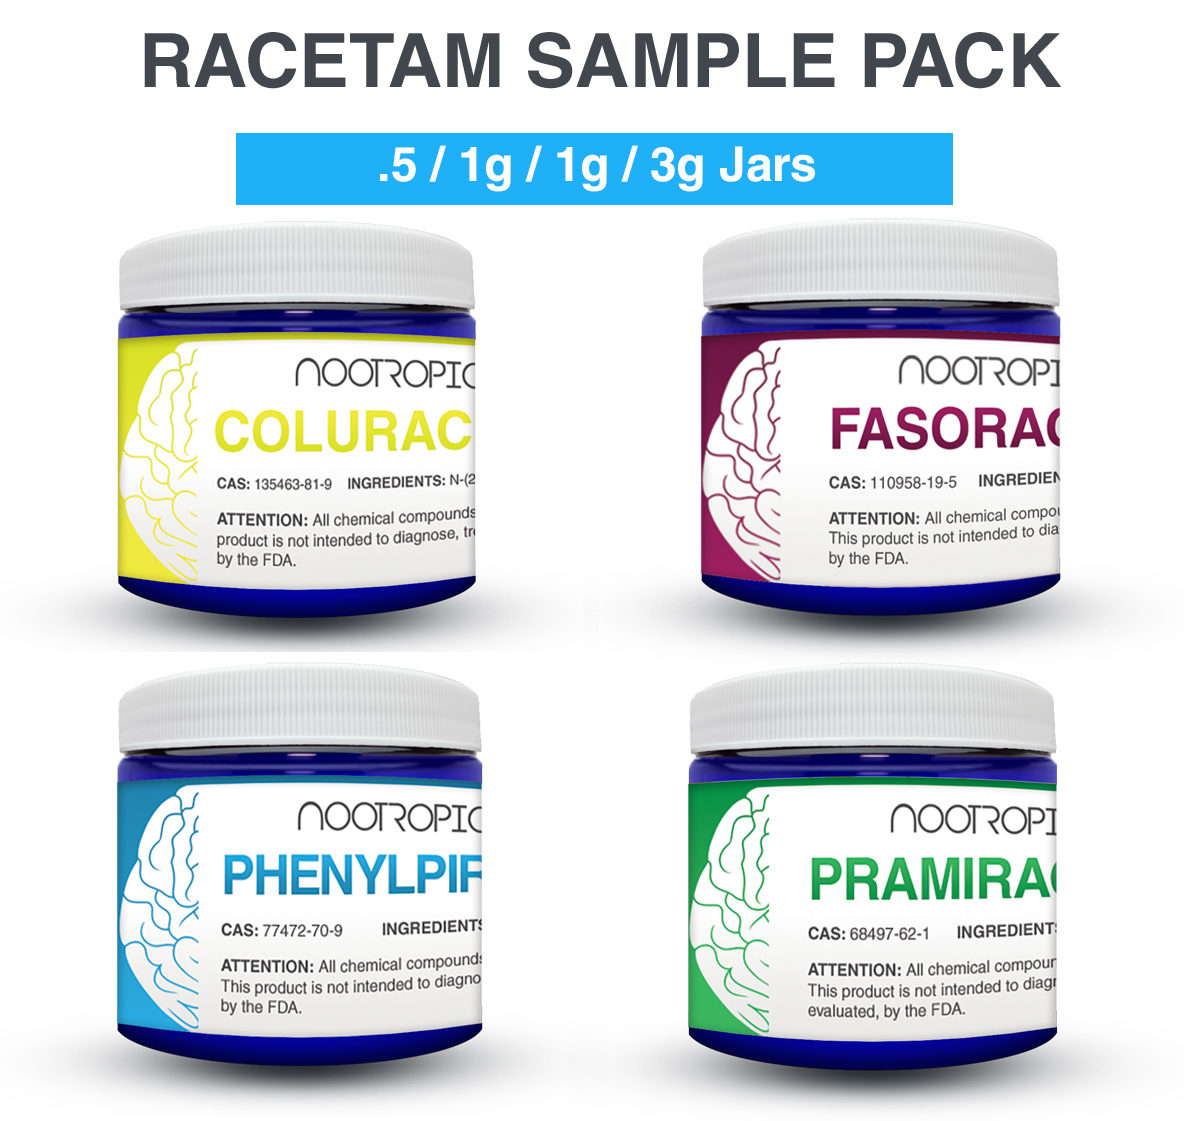 ADVANCED RACETAM SAMPLE PACK